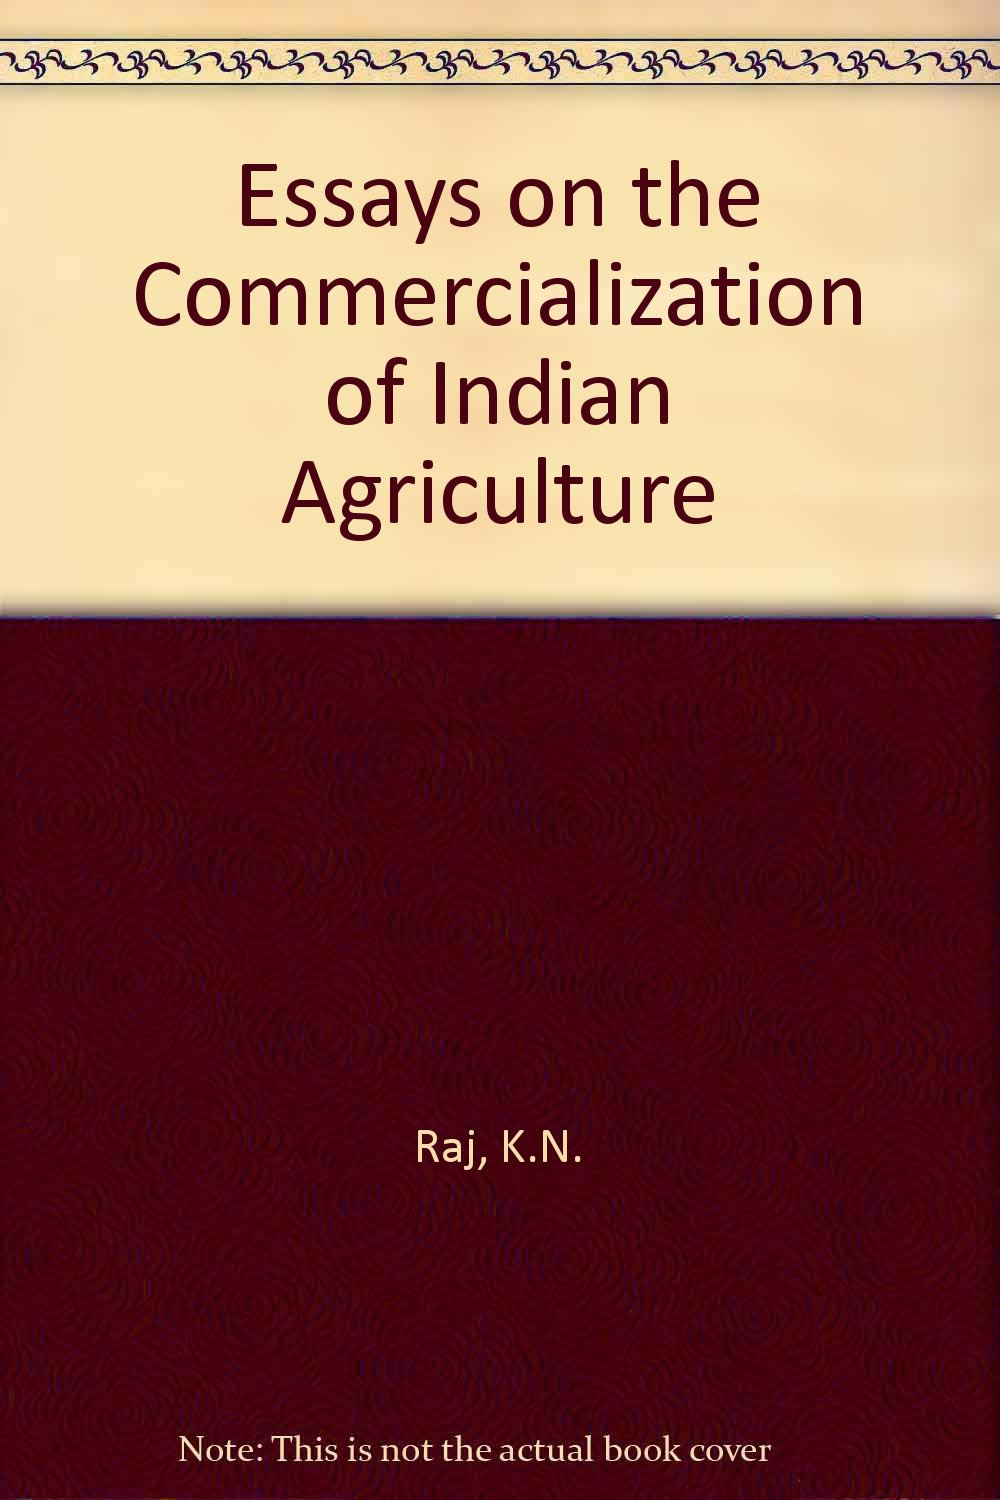 essays on the commercialization of n agriculture k n raj essays on the commercialization of n agriculture k n raj 9780195617290 com books